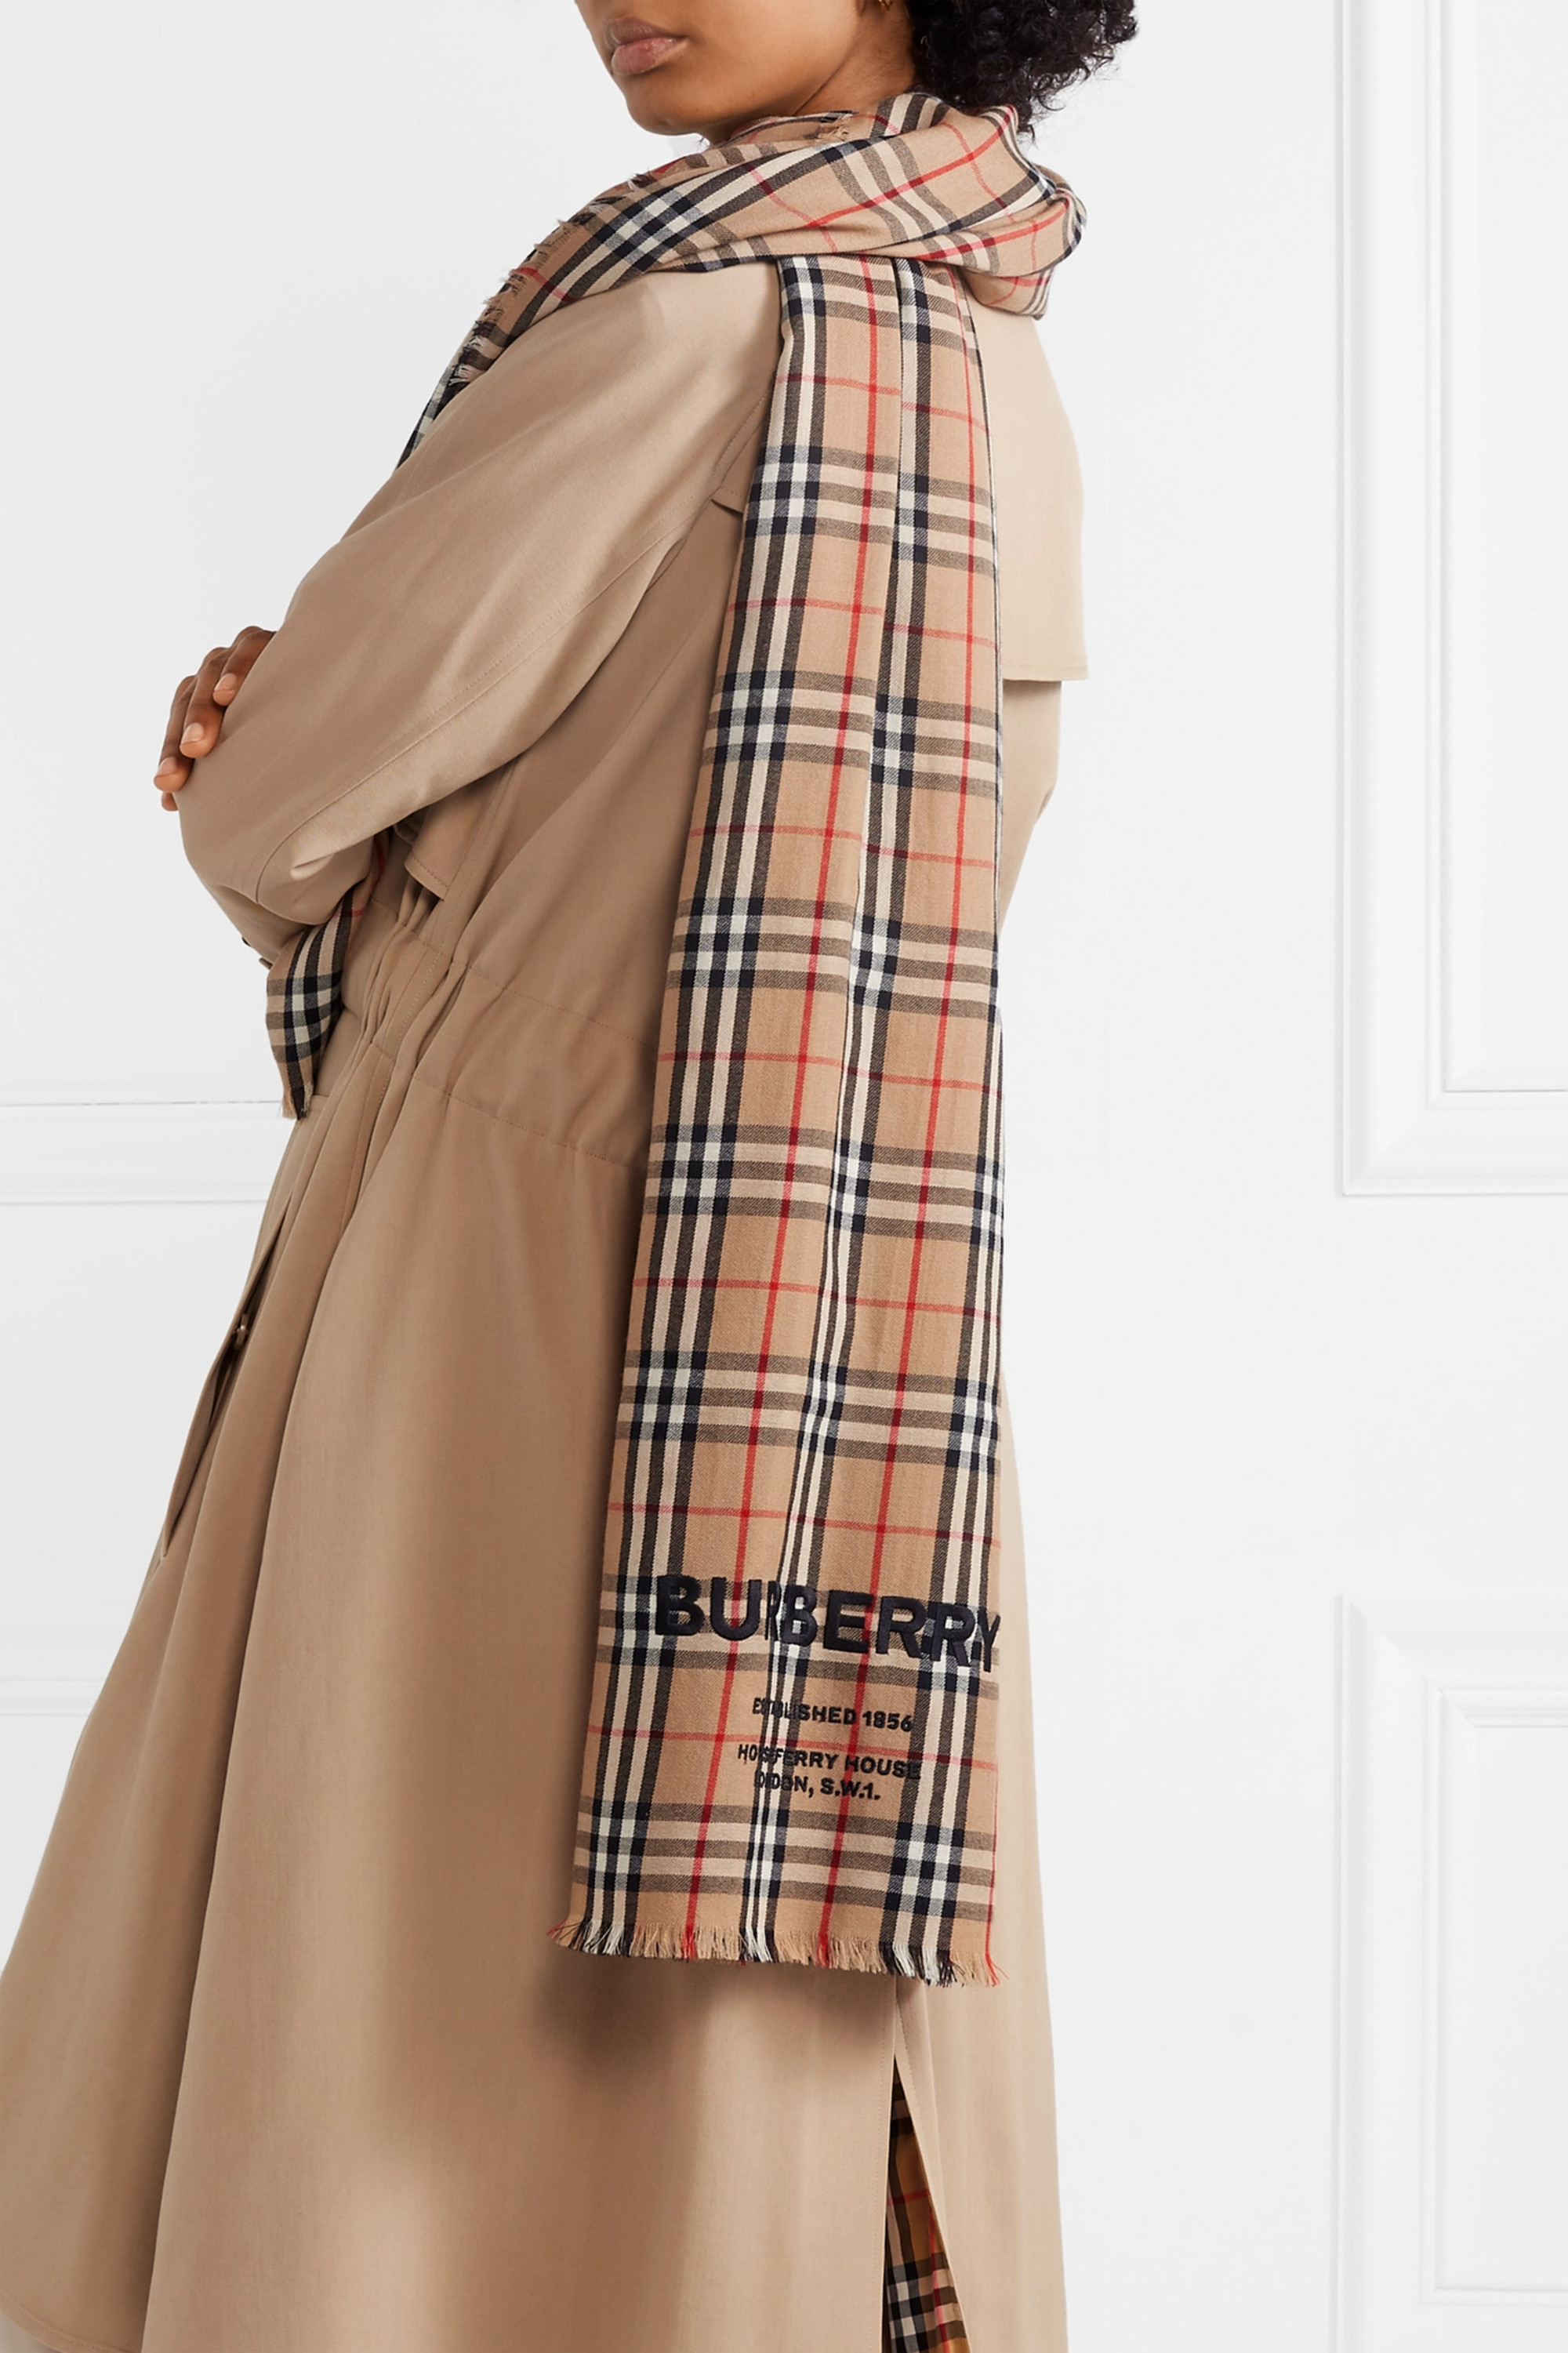 Burberry Checked embroidered cashmere scarf